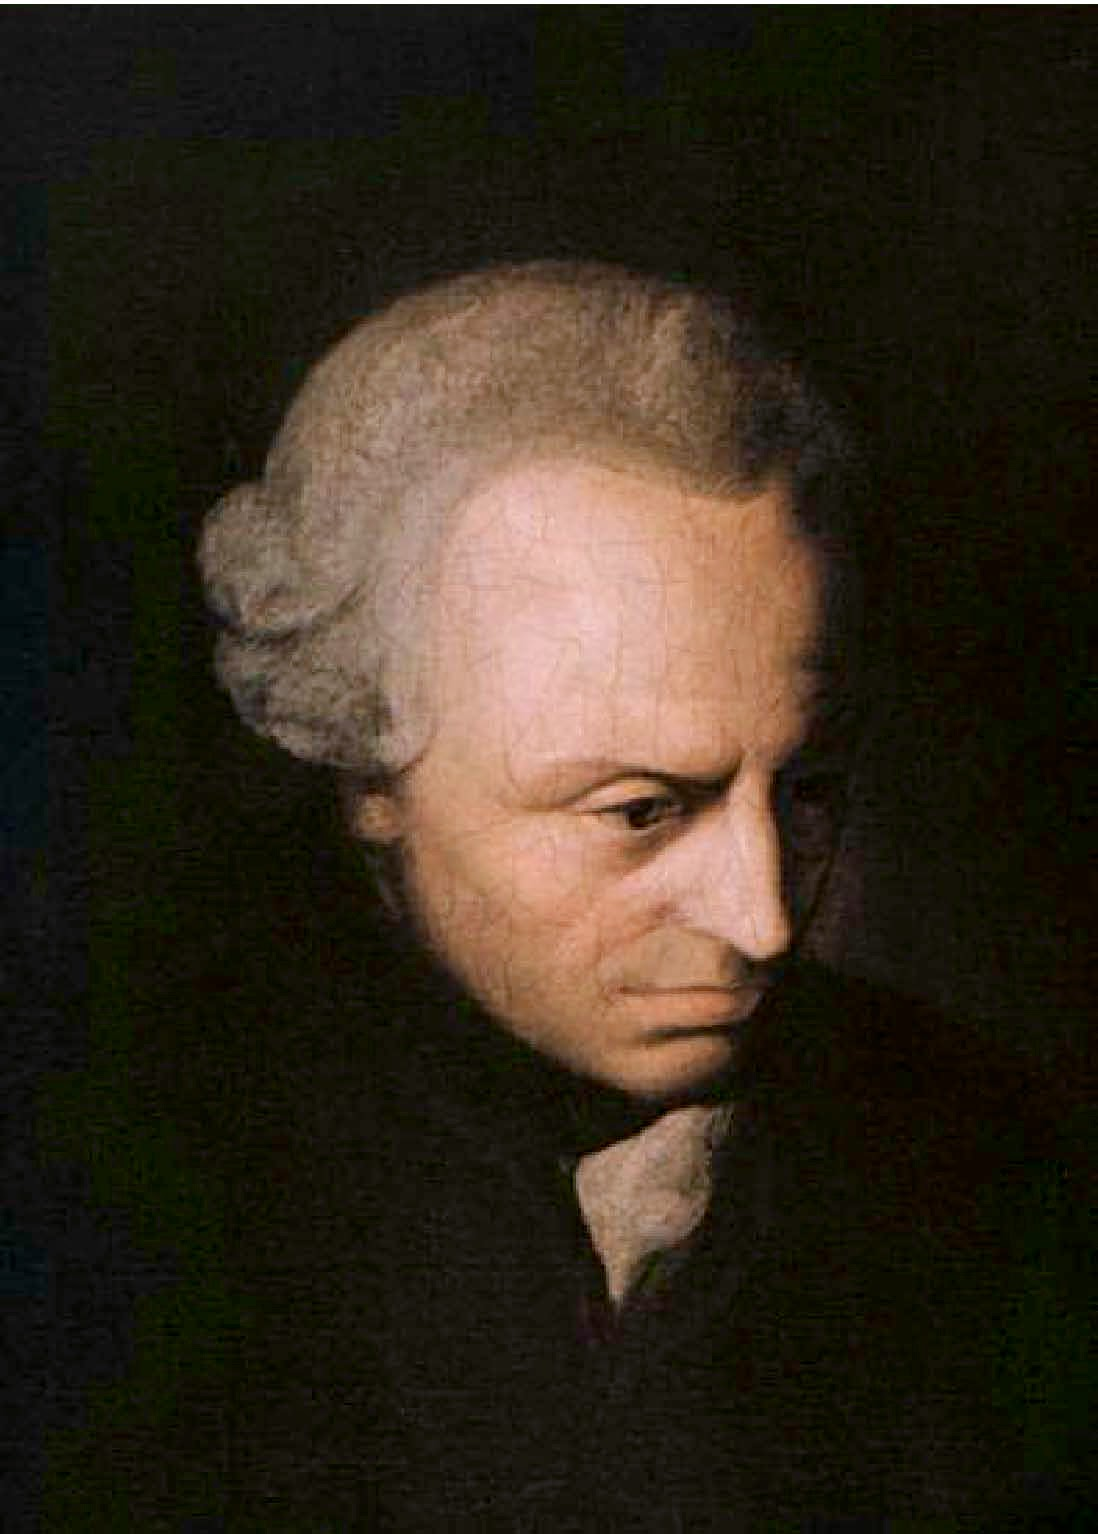 Kant elaborates on definition of pure aesthetic judgement